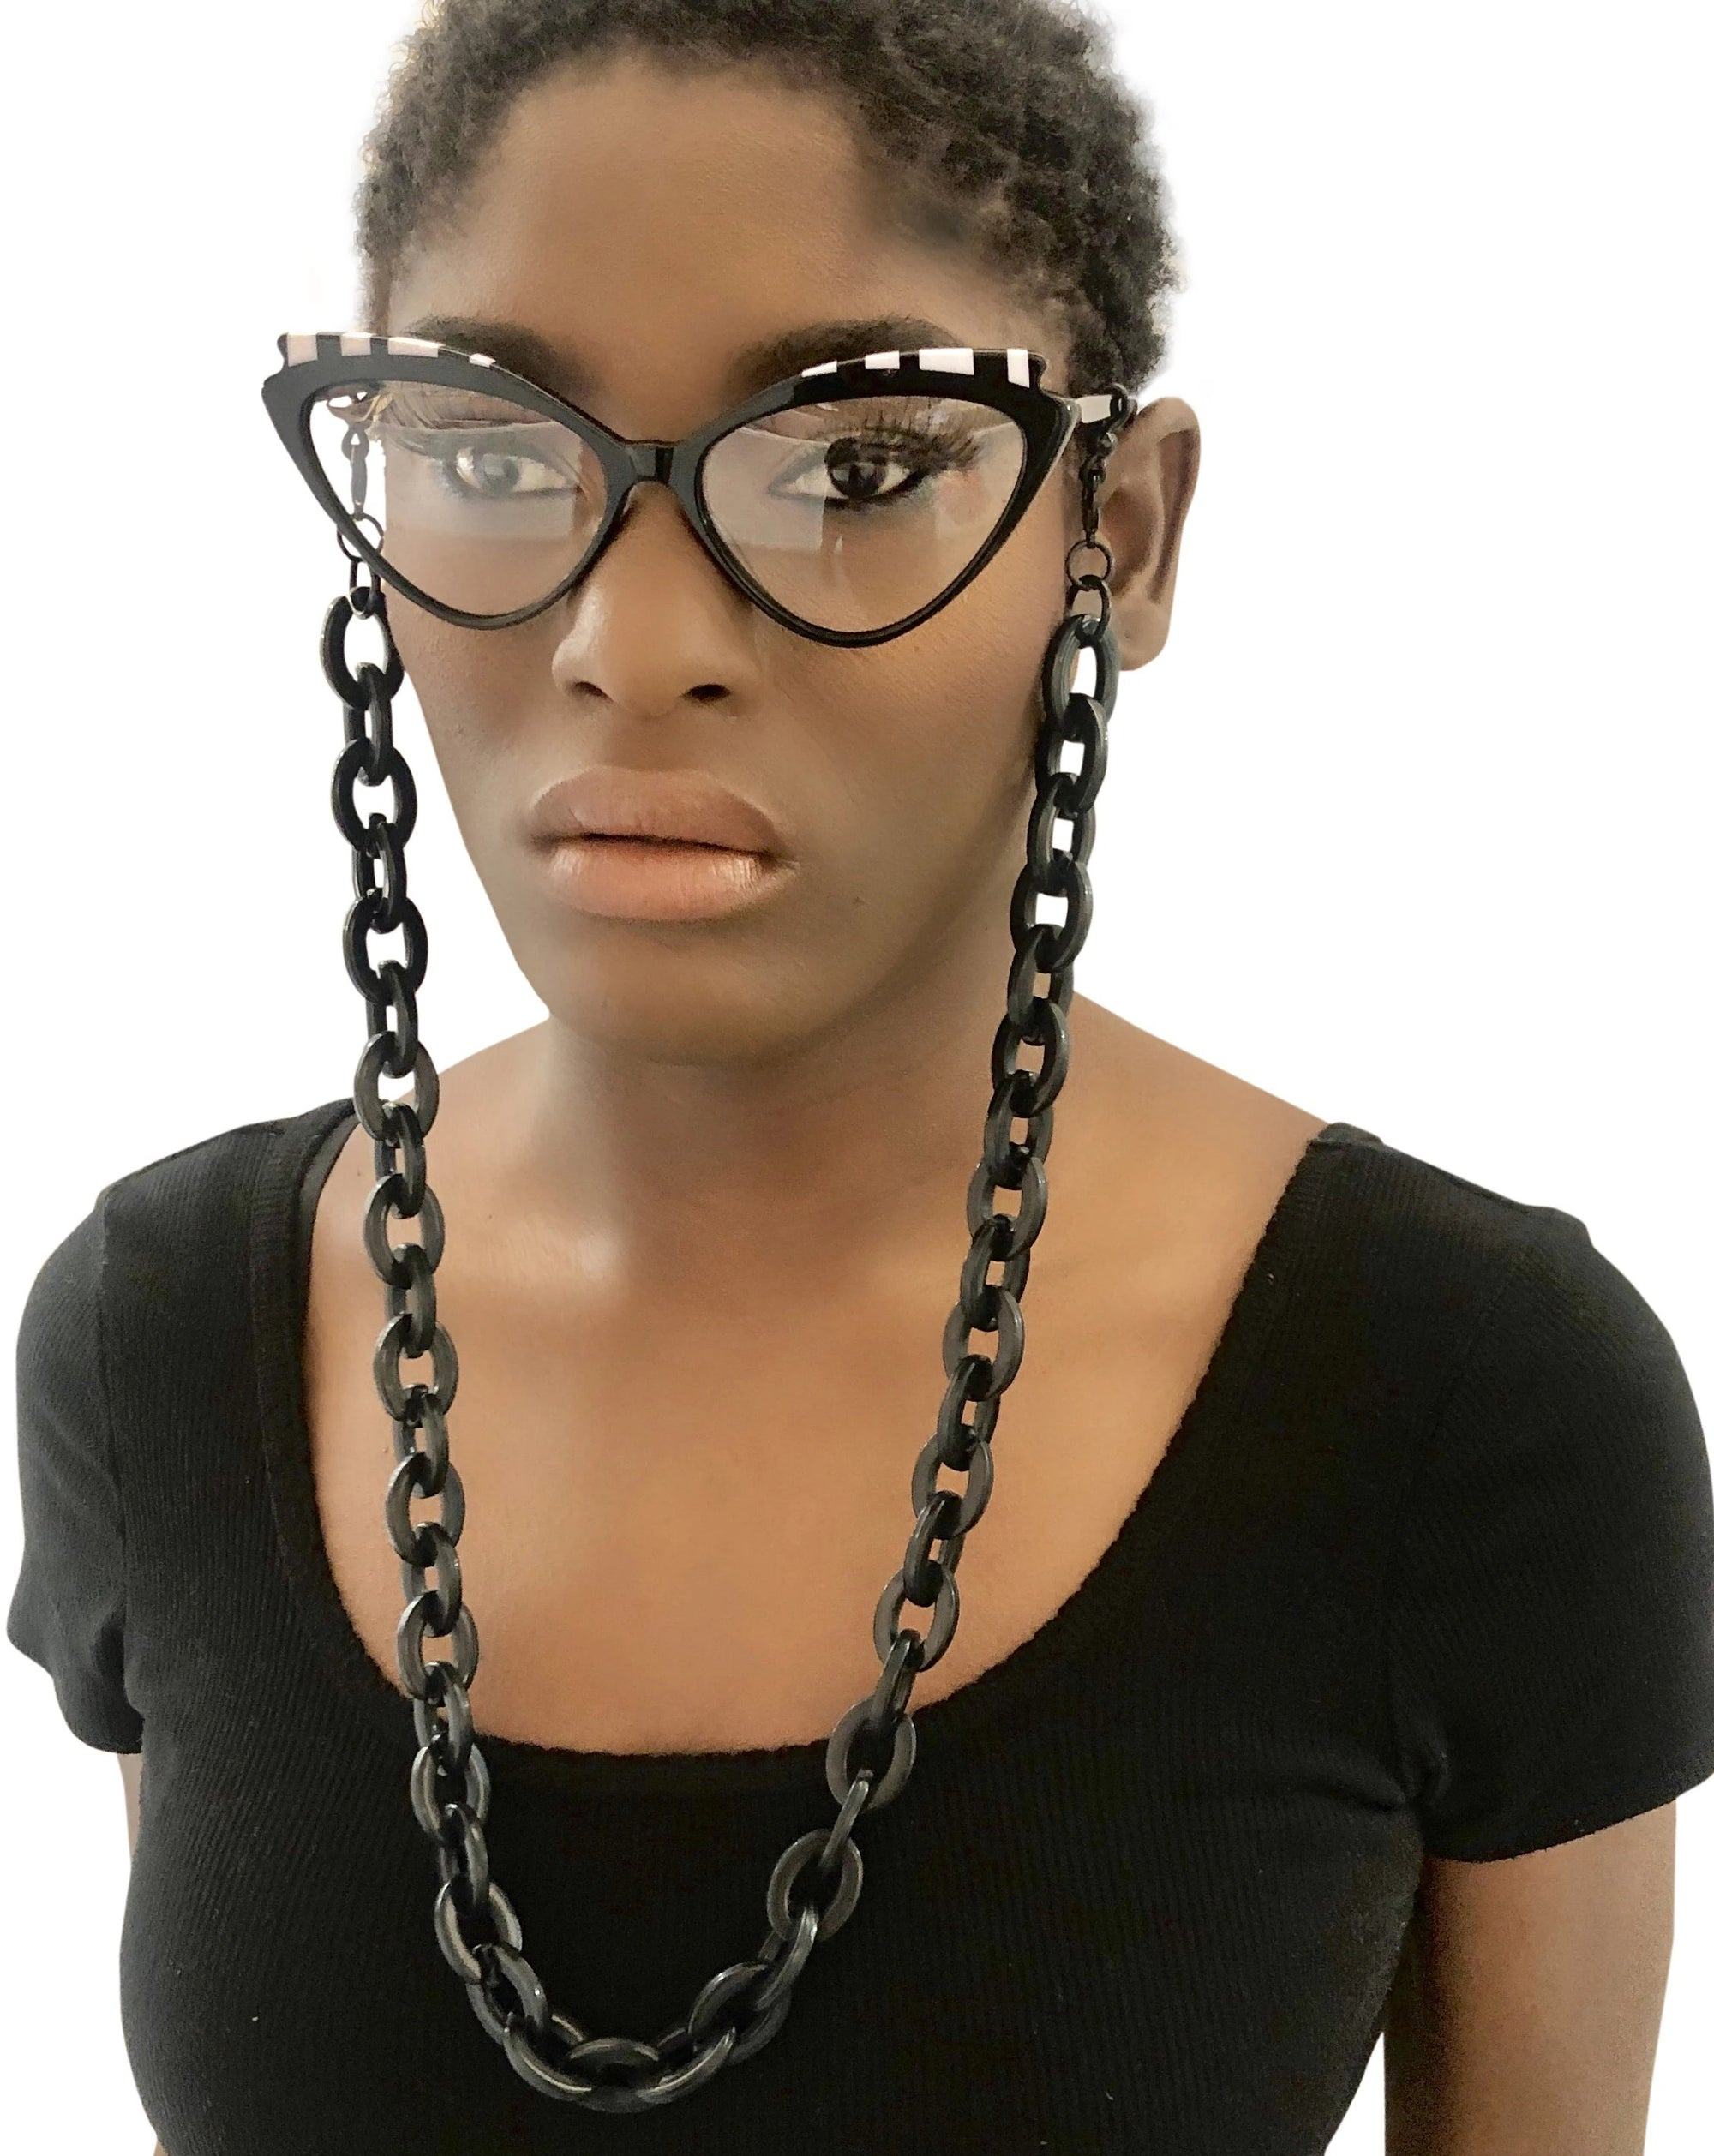 The Kabe Link Eyewear Chain